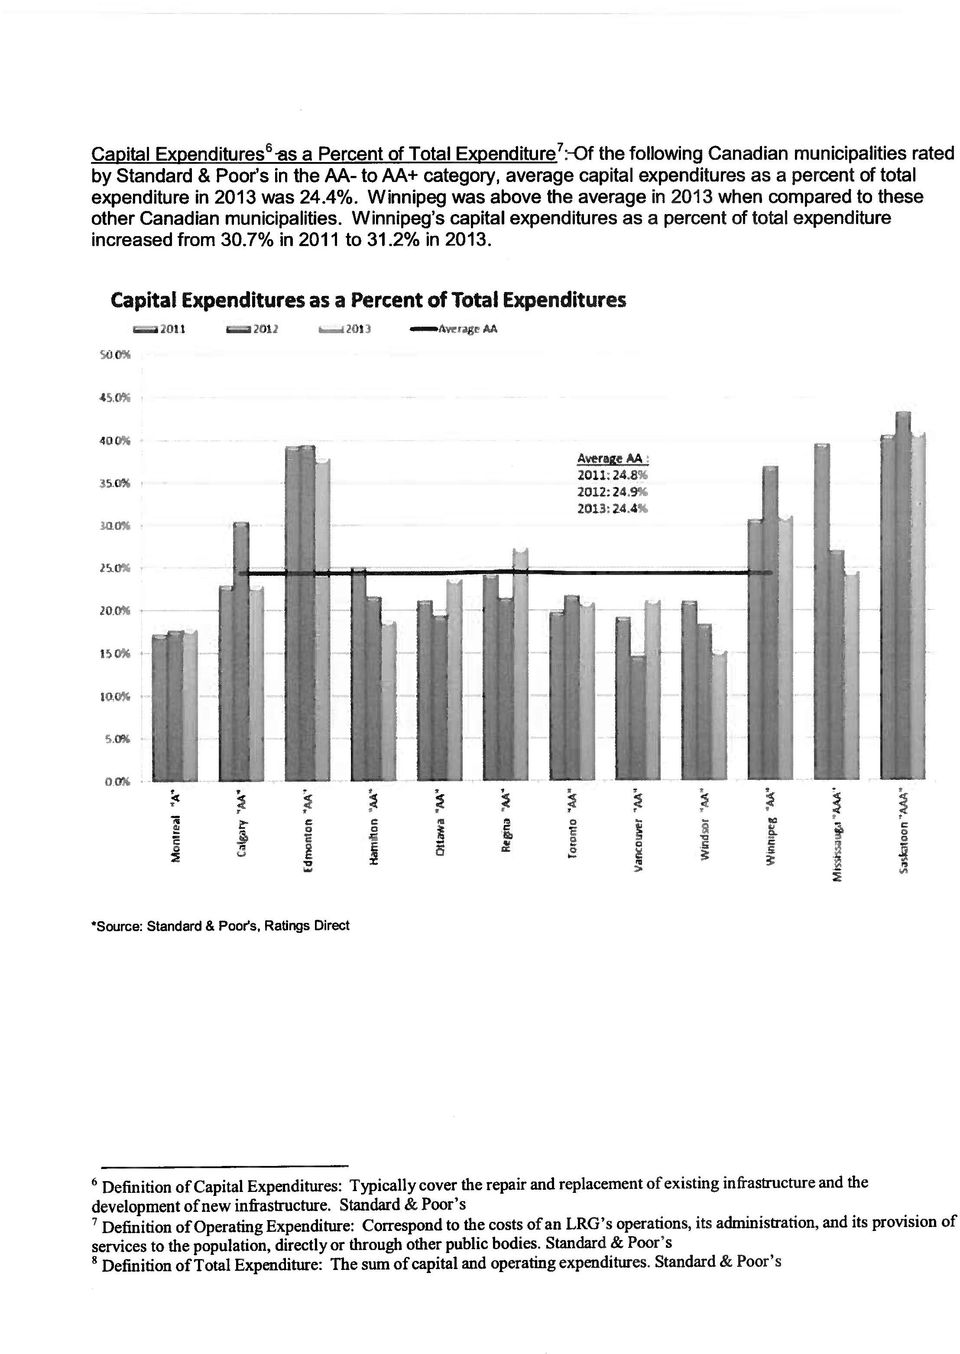 Winnipeg s capital expenditures as a percent of total expenditure increased from 30.7% in 2011 to 31.2% in 2013. Capital Expenditures as a Percent of Total Expenditures.